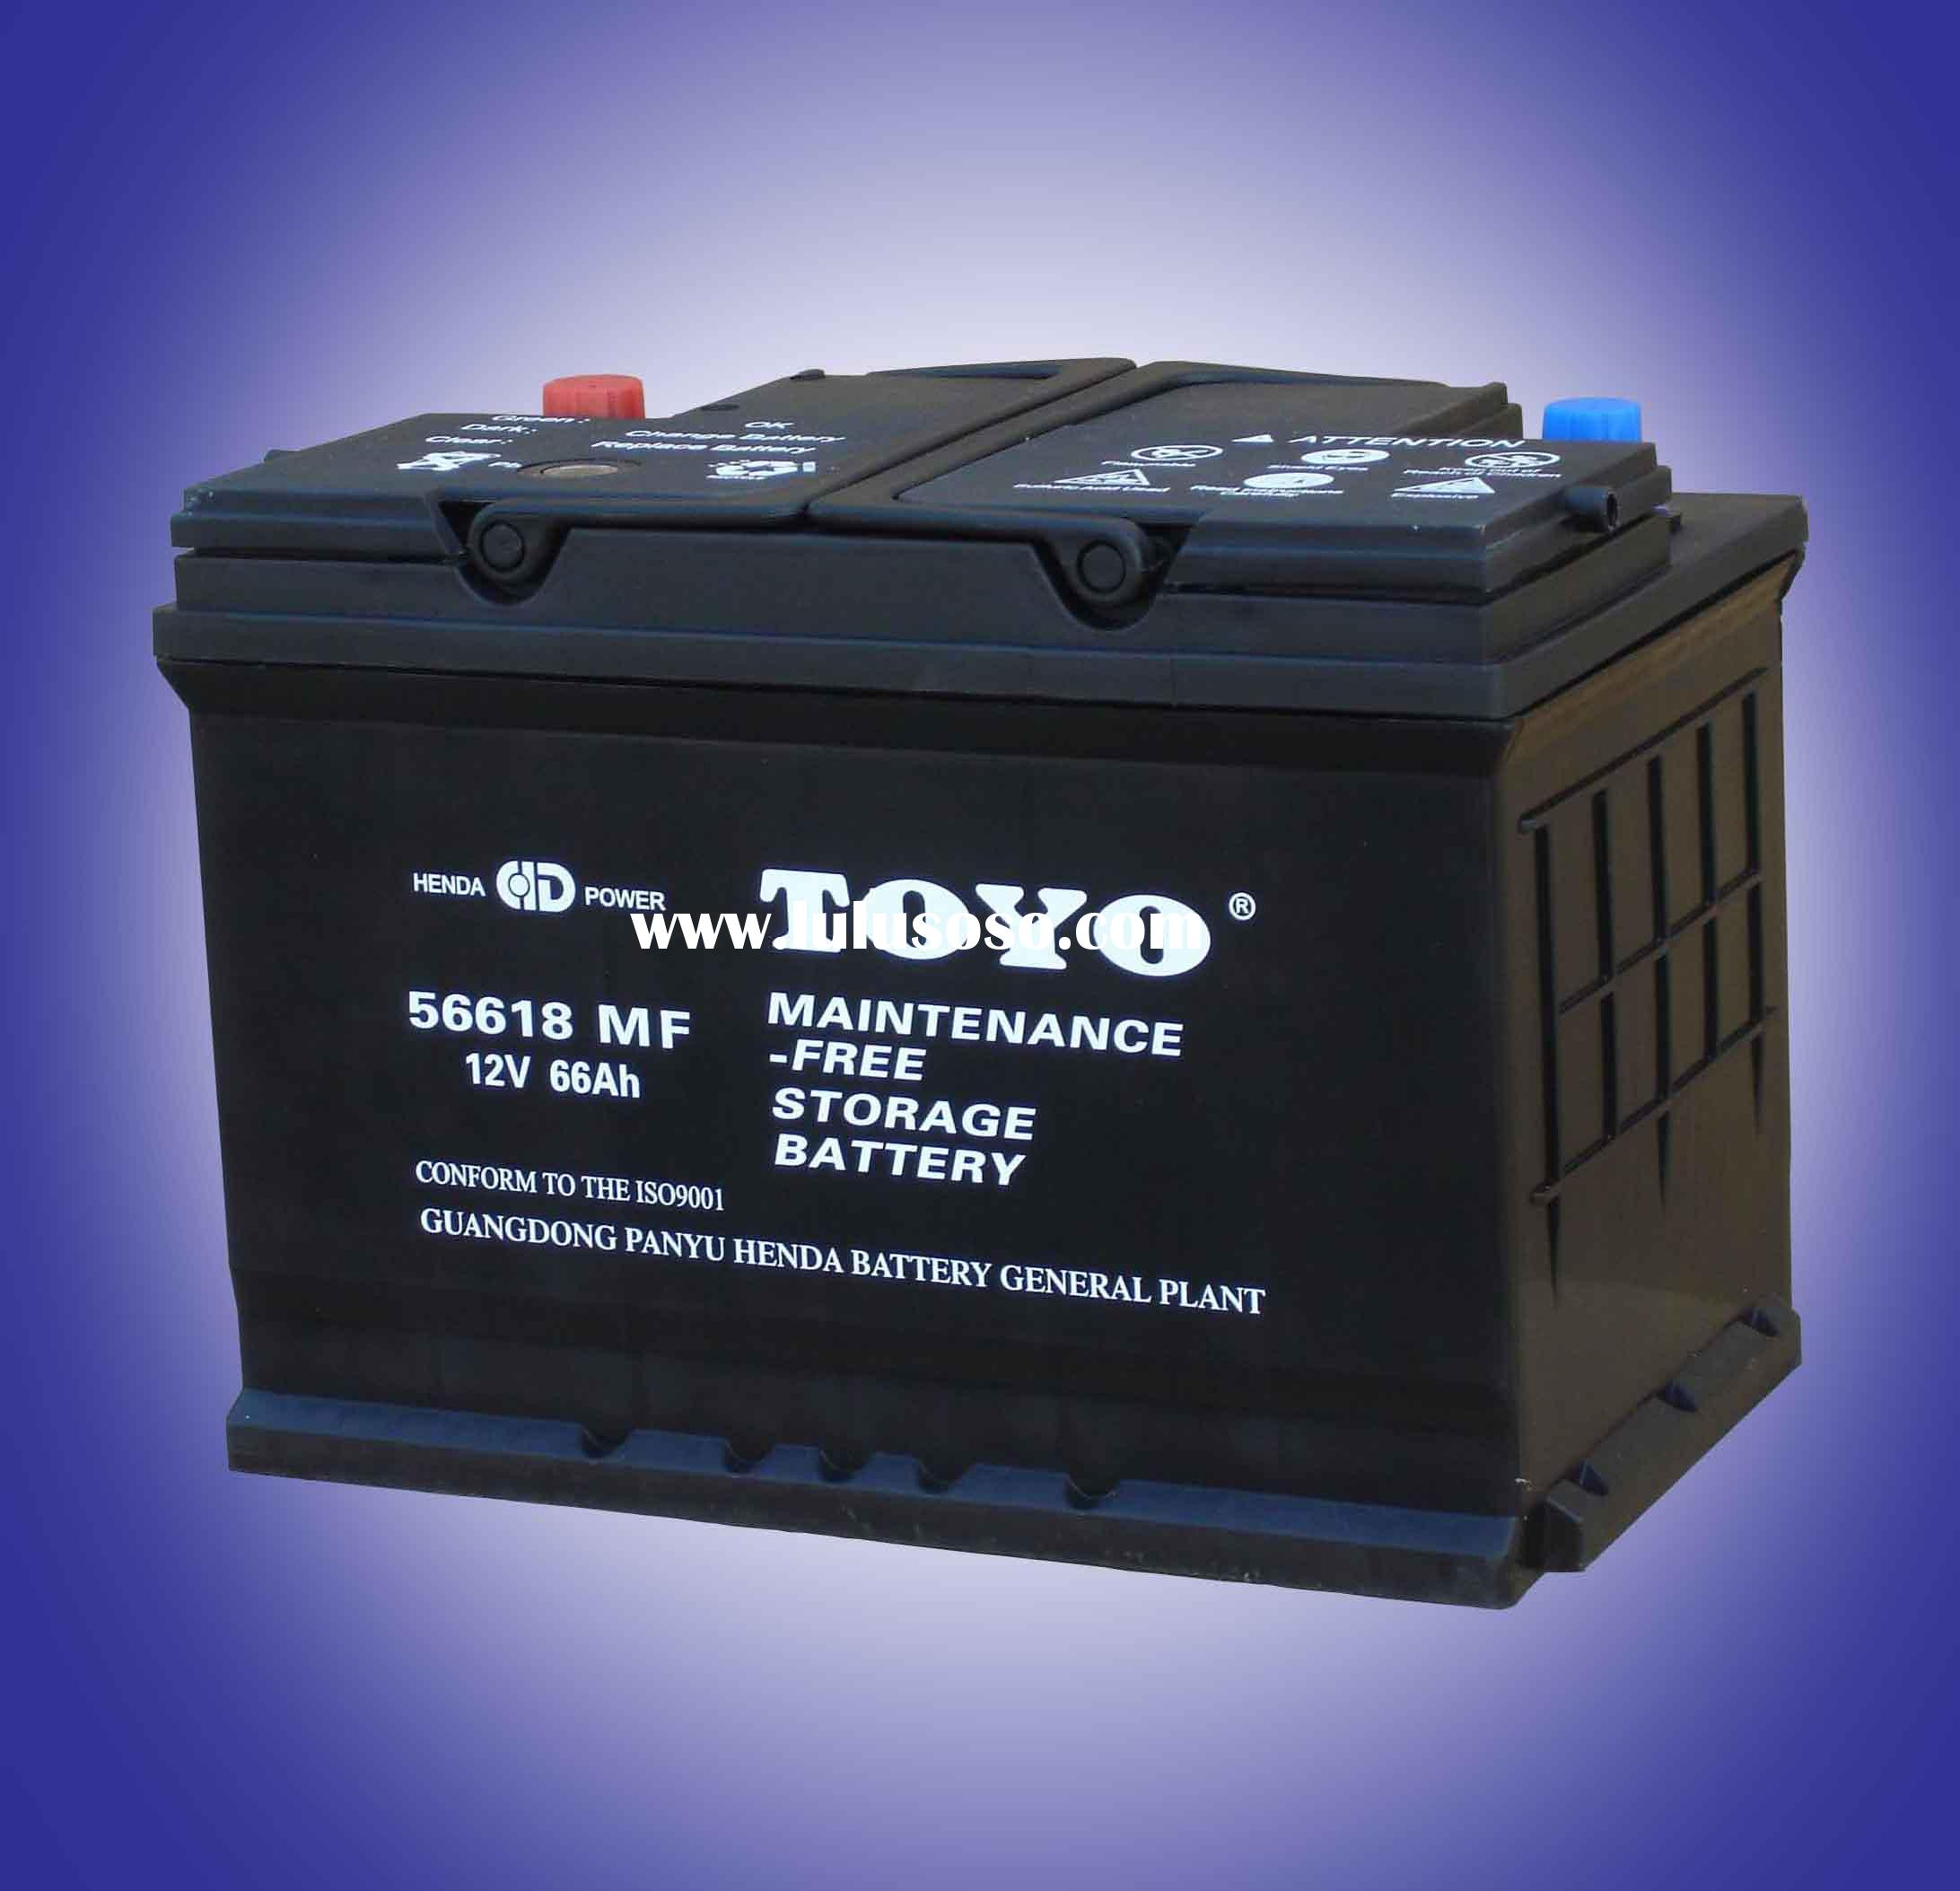 56638 Maintenance Free Starting Car Battery; MF auto battery